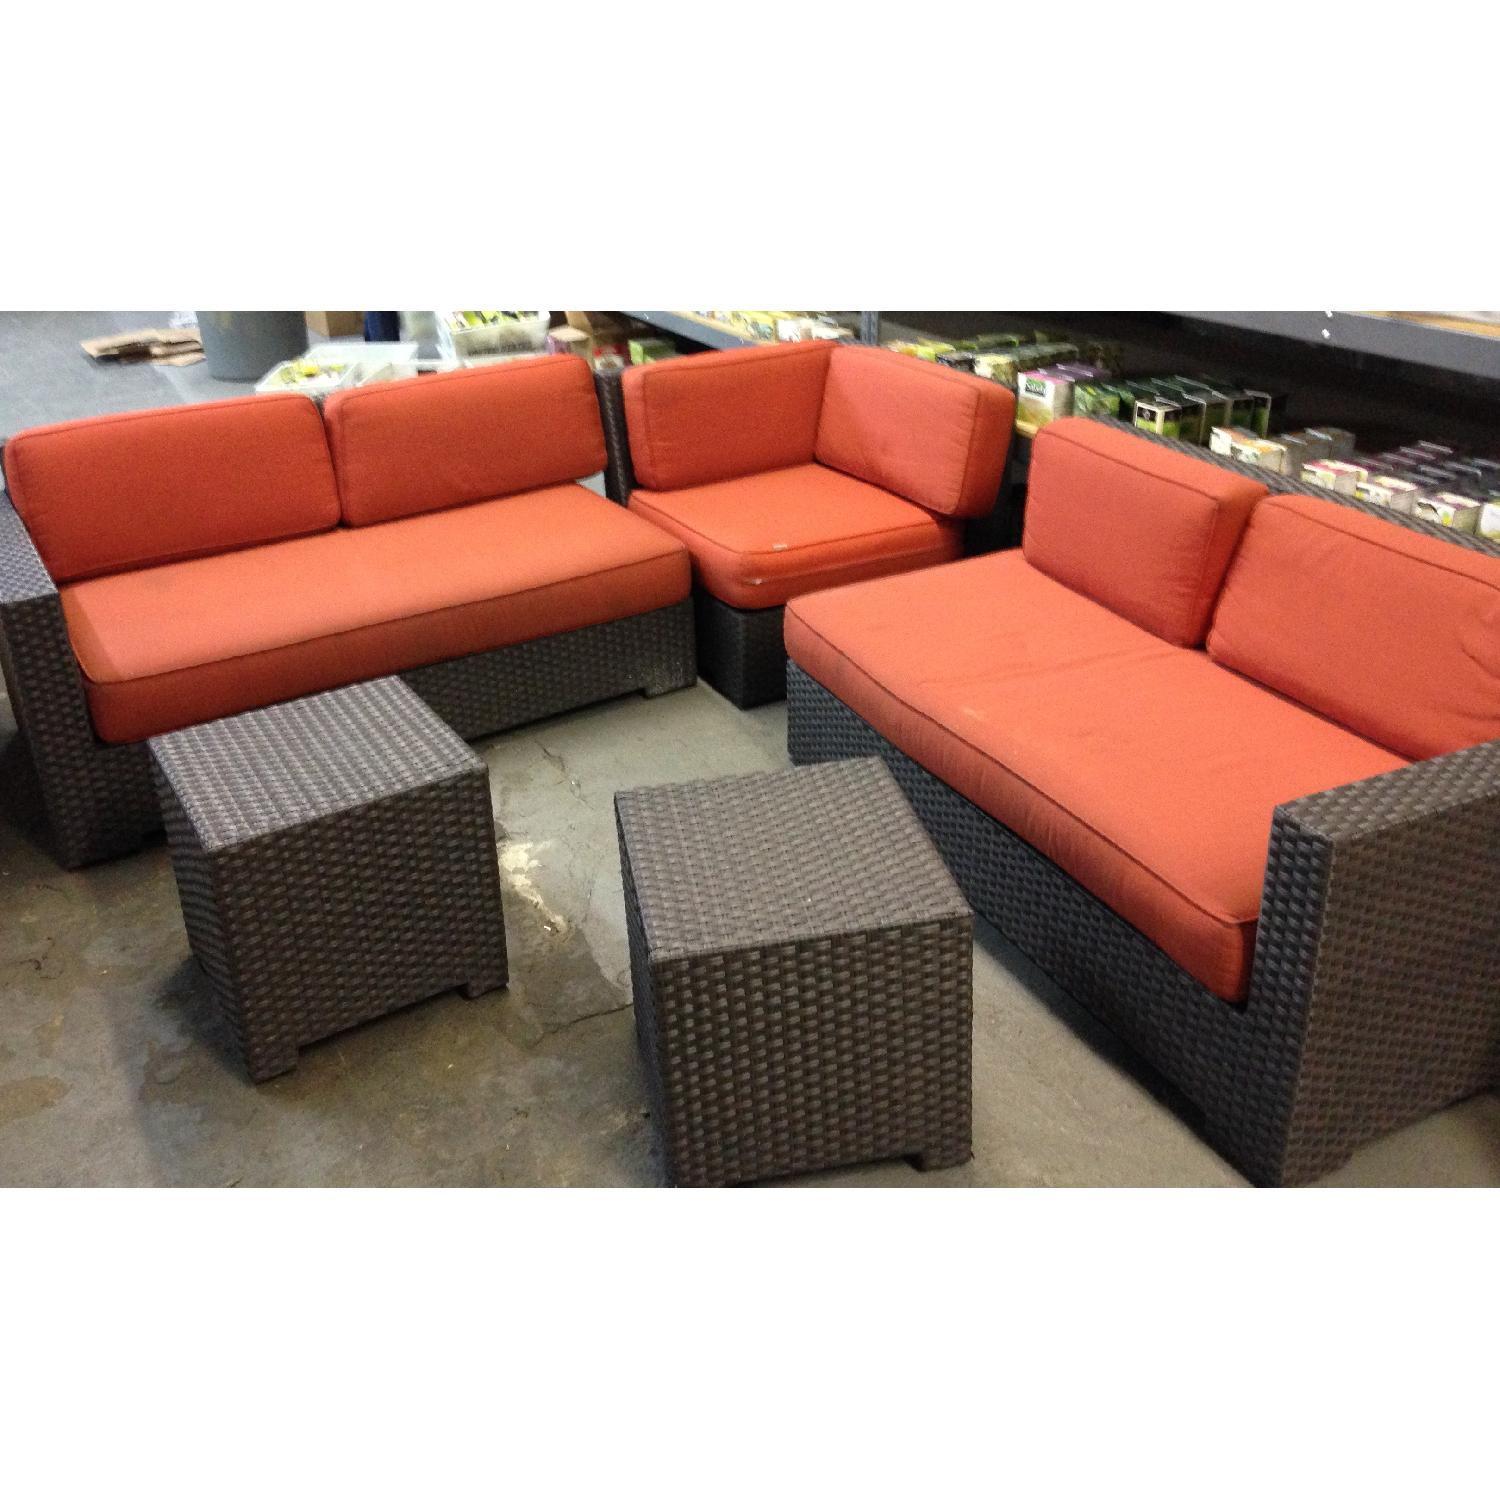 Crate & Barrel Ventura Modular 3 Piece Sectional & 2 Bunching Tables - image-2